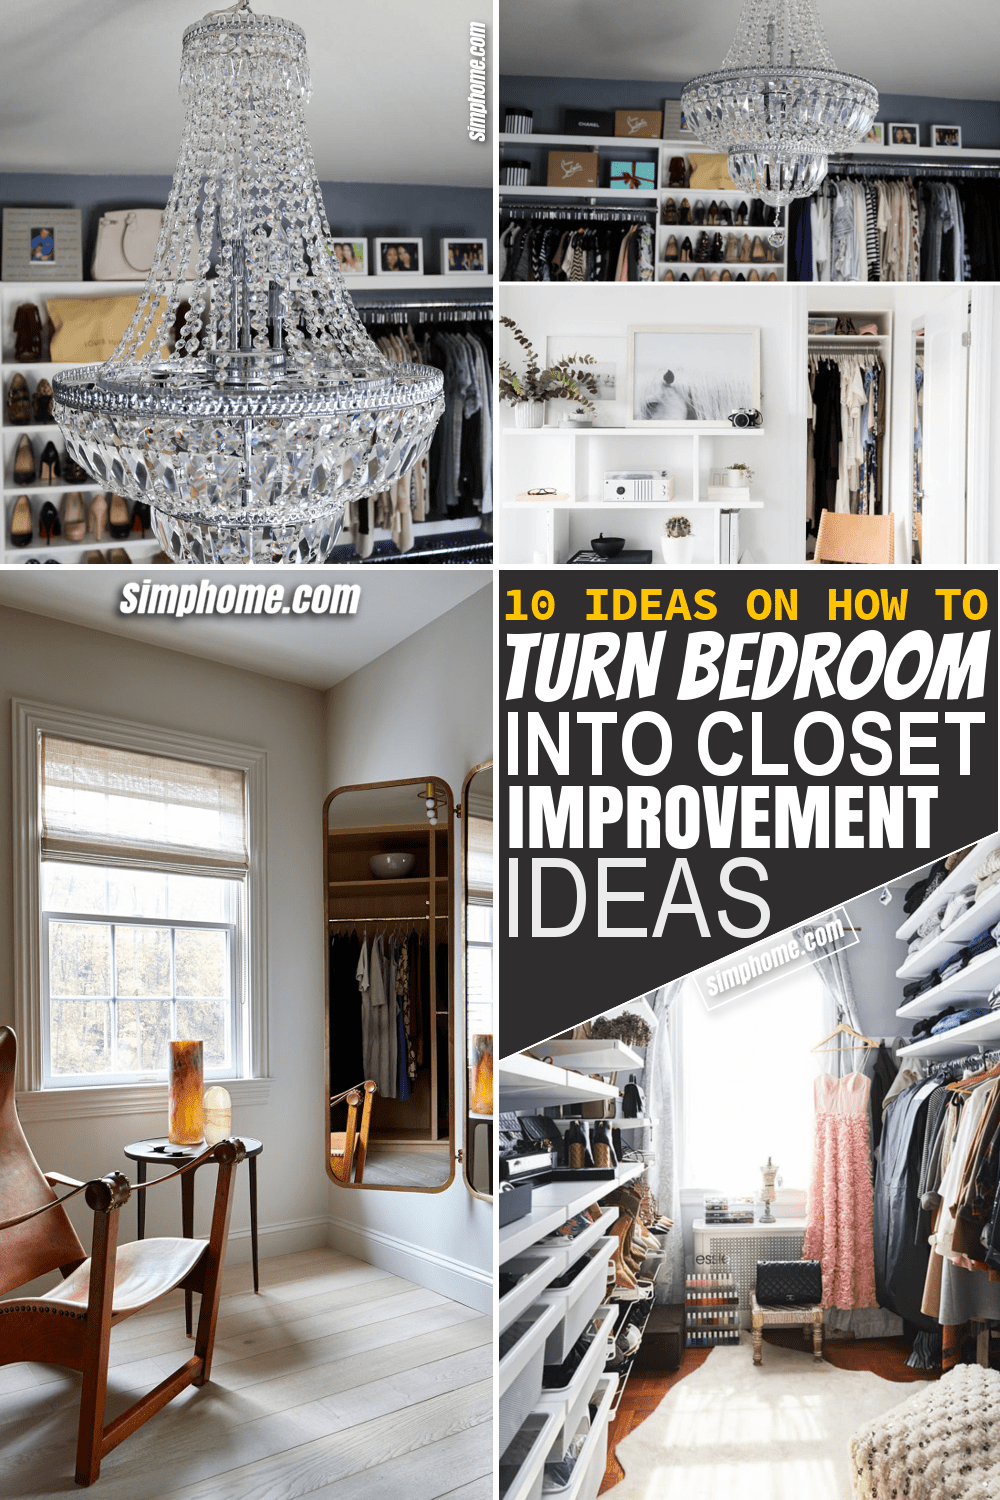 Simphome.com 10 ideas on how to turn a bedroom into a closet Featured Image